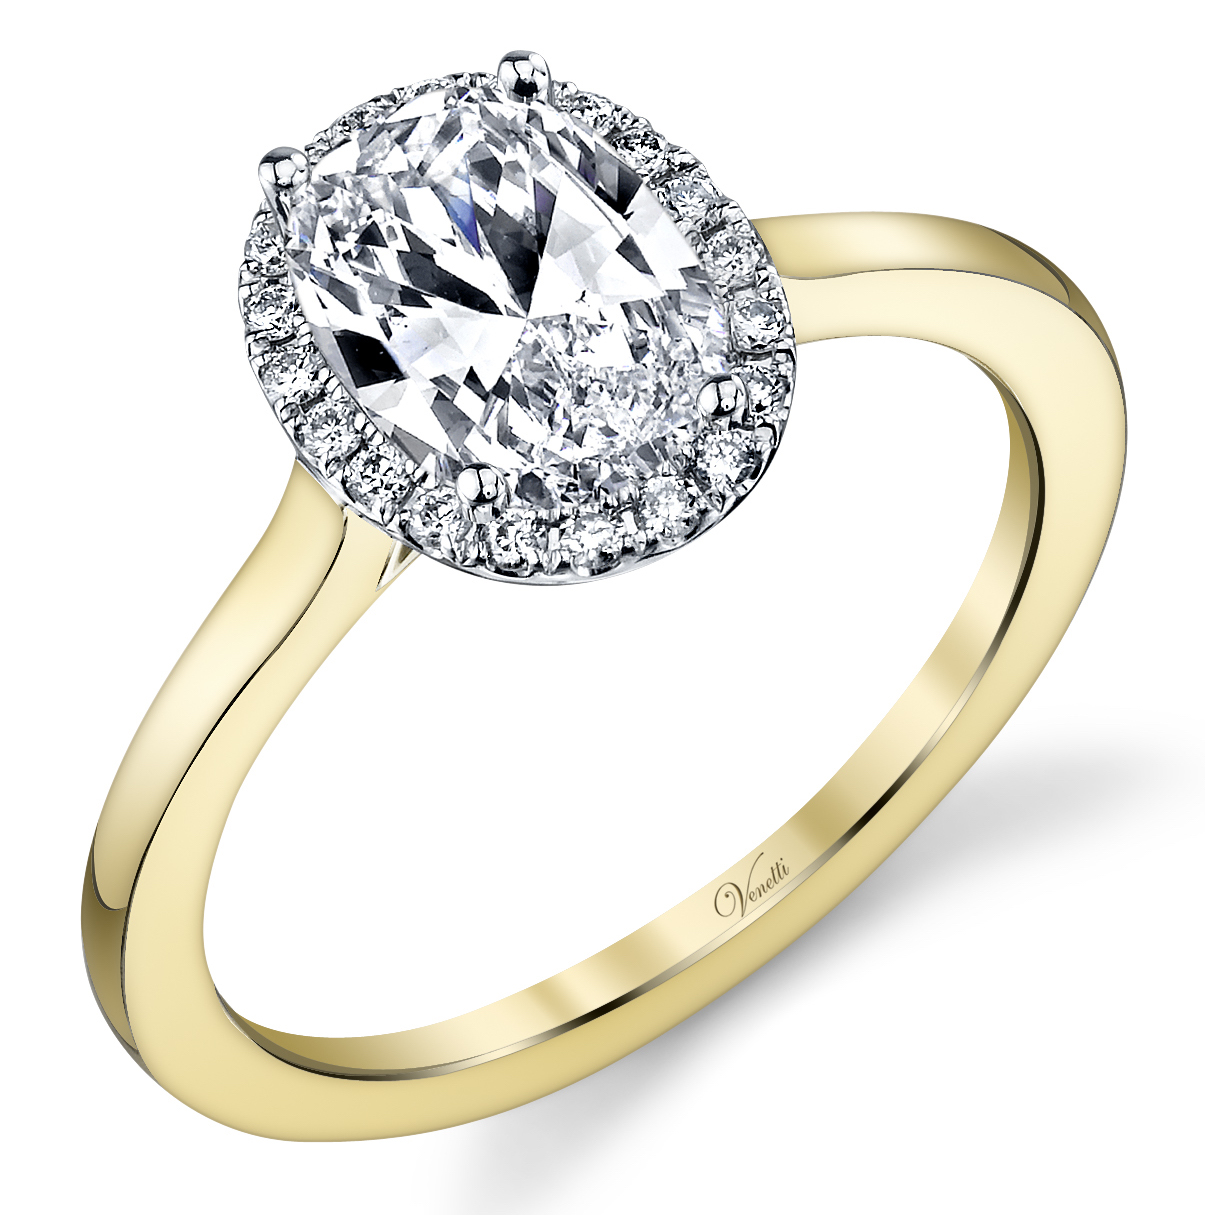 Venetti two-tone oval diamond engagement ring | JCK On Your Market